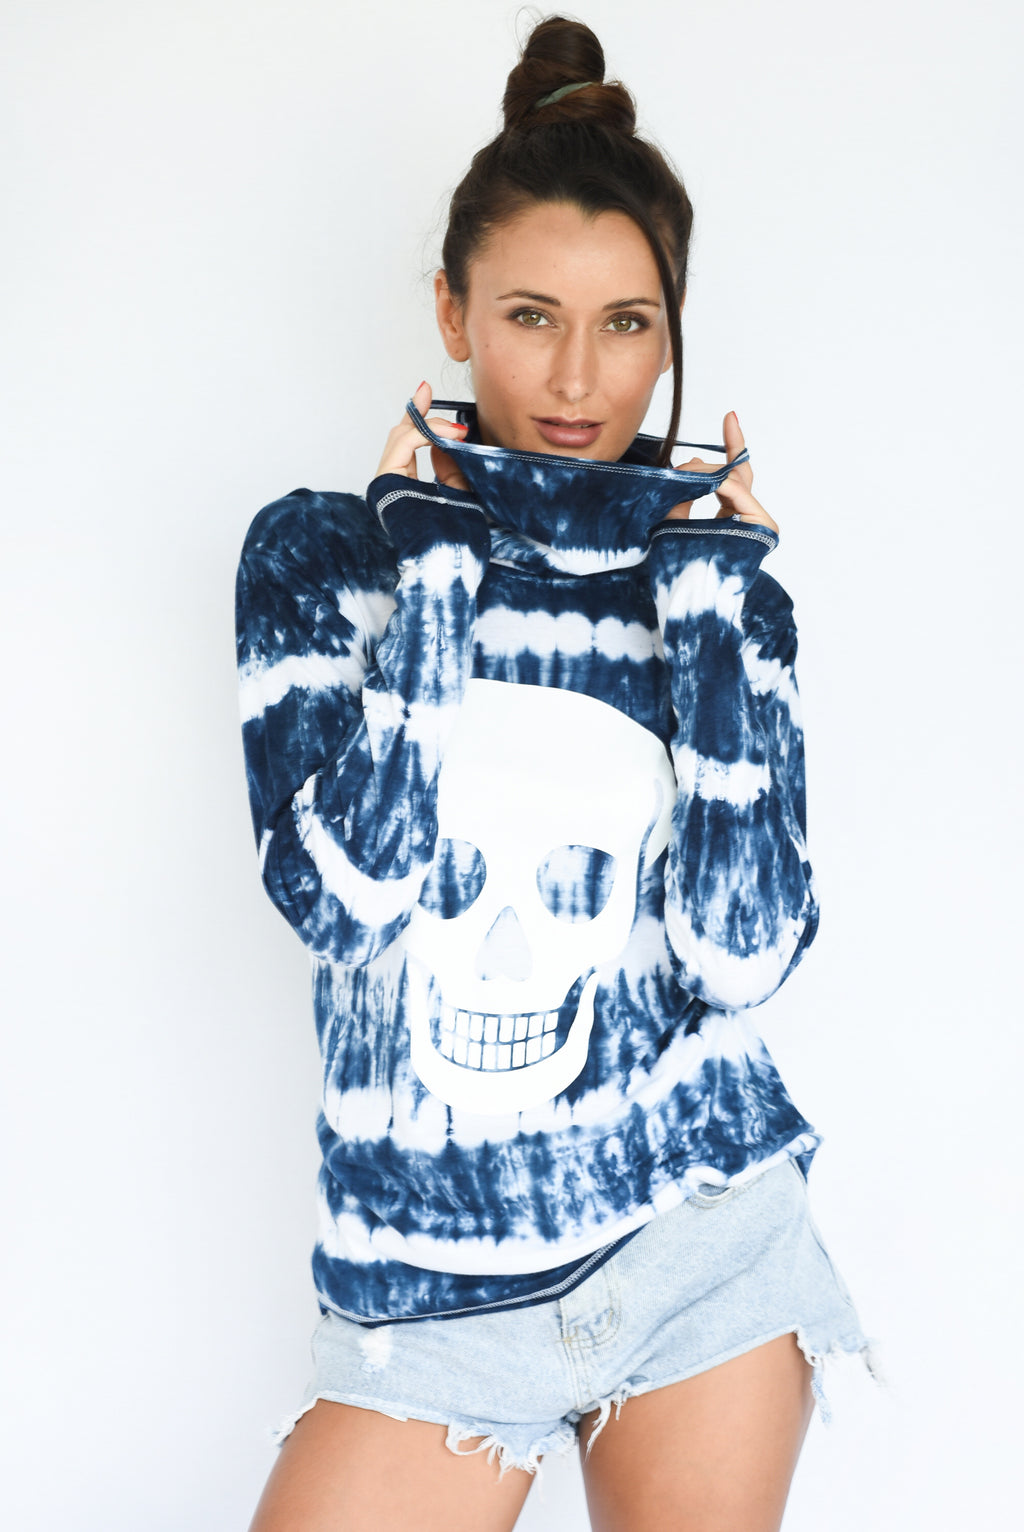 PRE-ORDER - 'SELF LOVE' LOOP LONG SLEEVES TEE - SHIBORI TIE-DYE